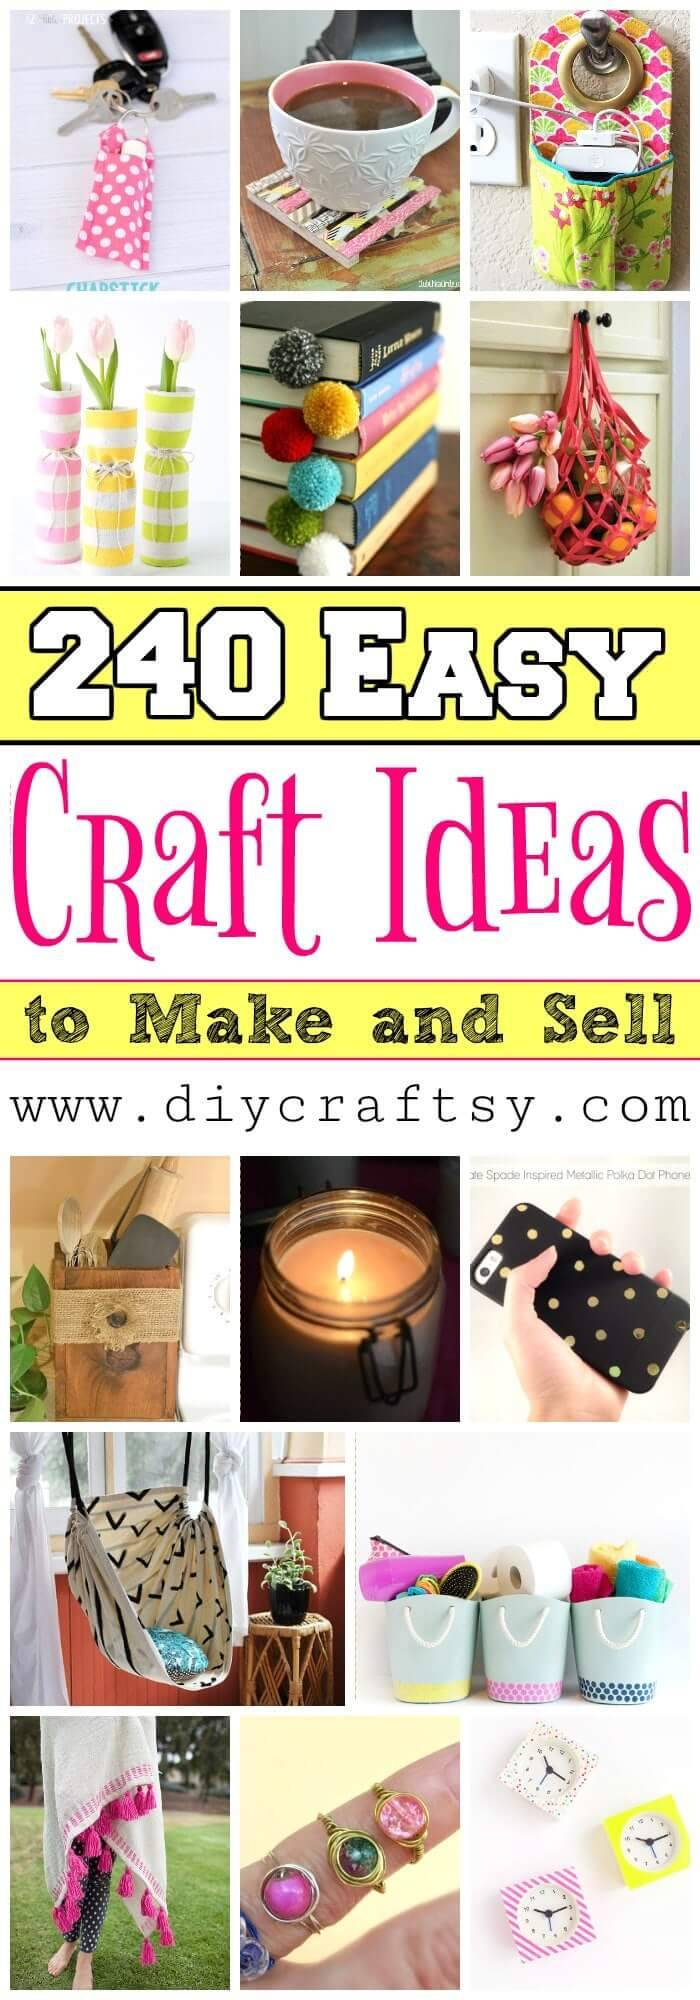 240 easy craft ideas to make and sell diy crafts for Easy crafts to make and sell for profit